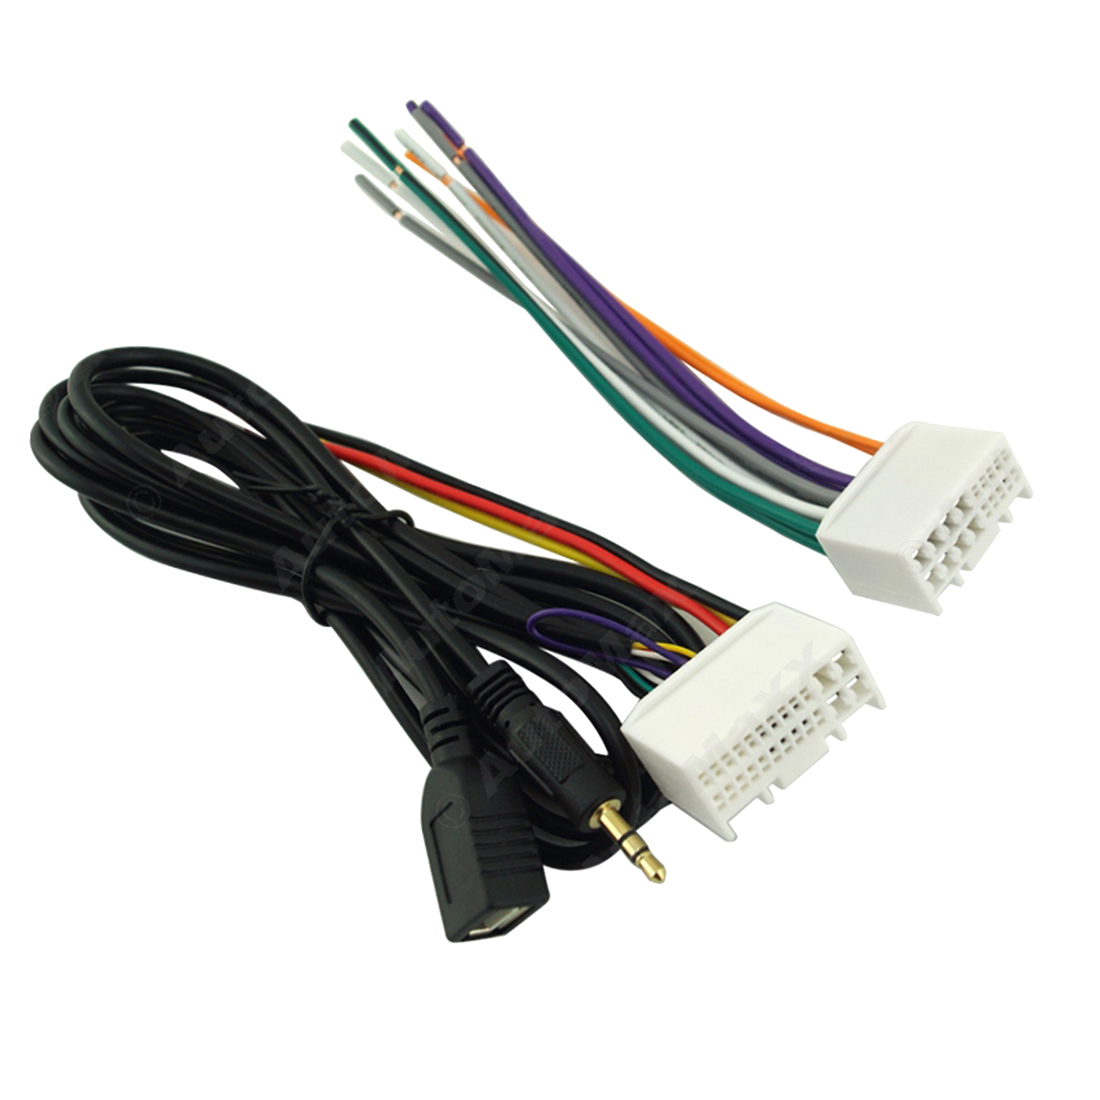 Dewtreetali Car Audio Cd Stereo Wiring Harness Adapter